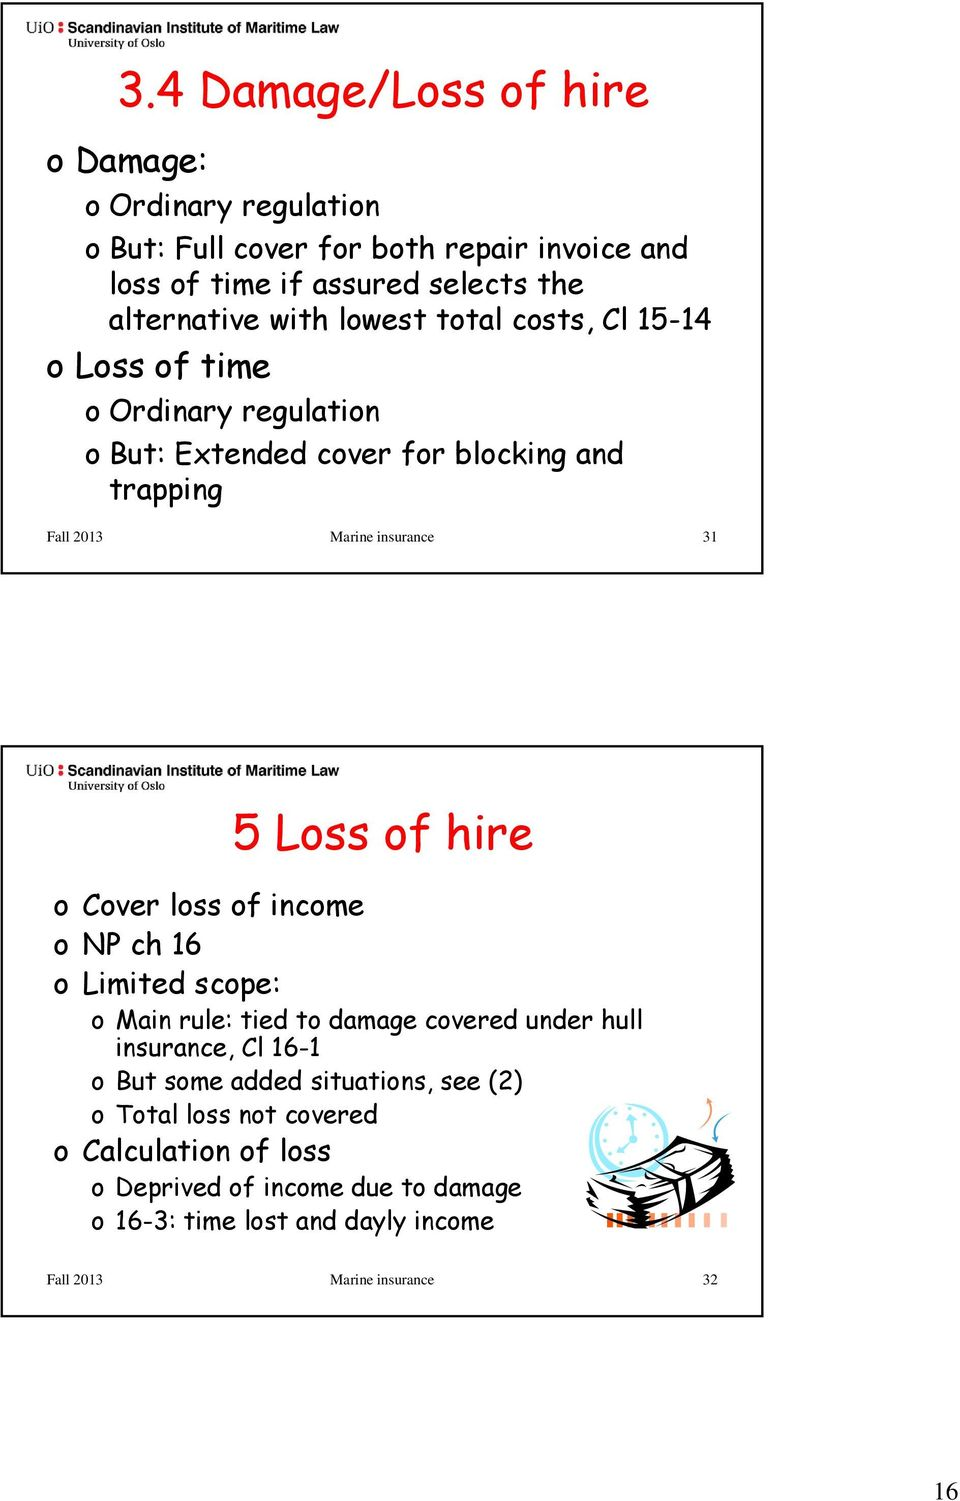 Loss of hire o Cover loss of income onp ch 16 o Limited scope: o Main rule: tied to damage covered under hull insurance, Cl 16-1 o But some added